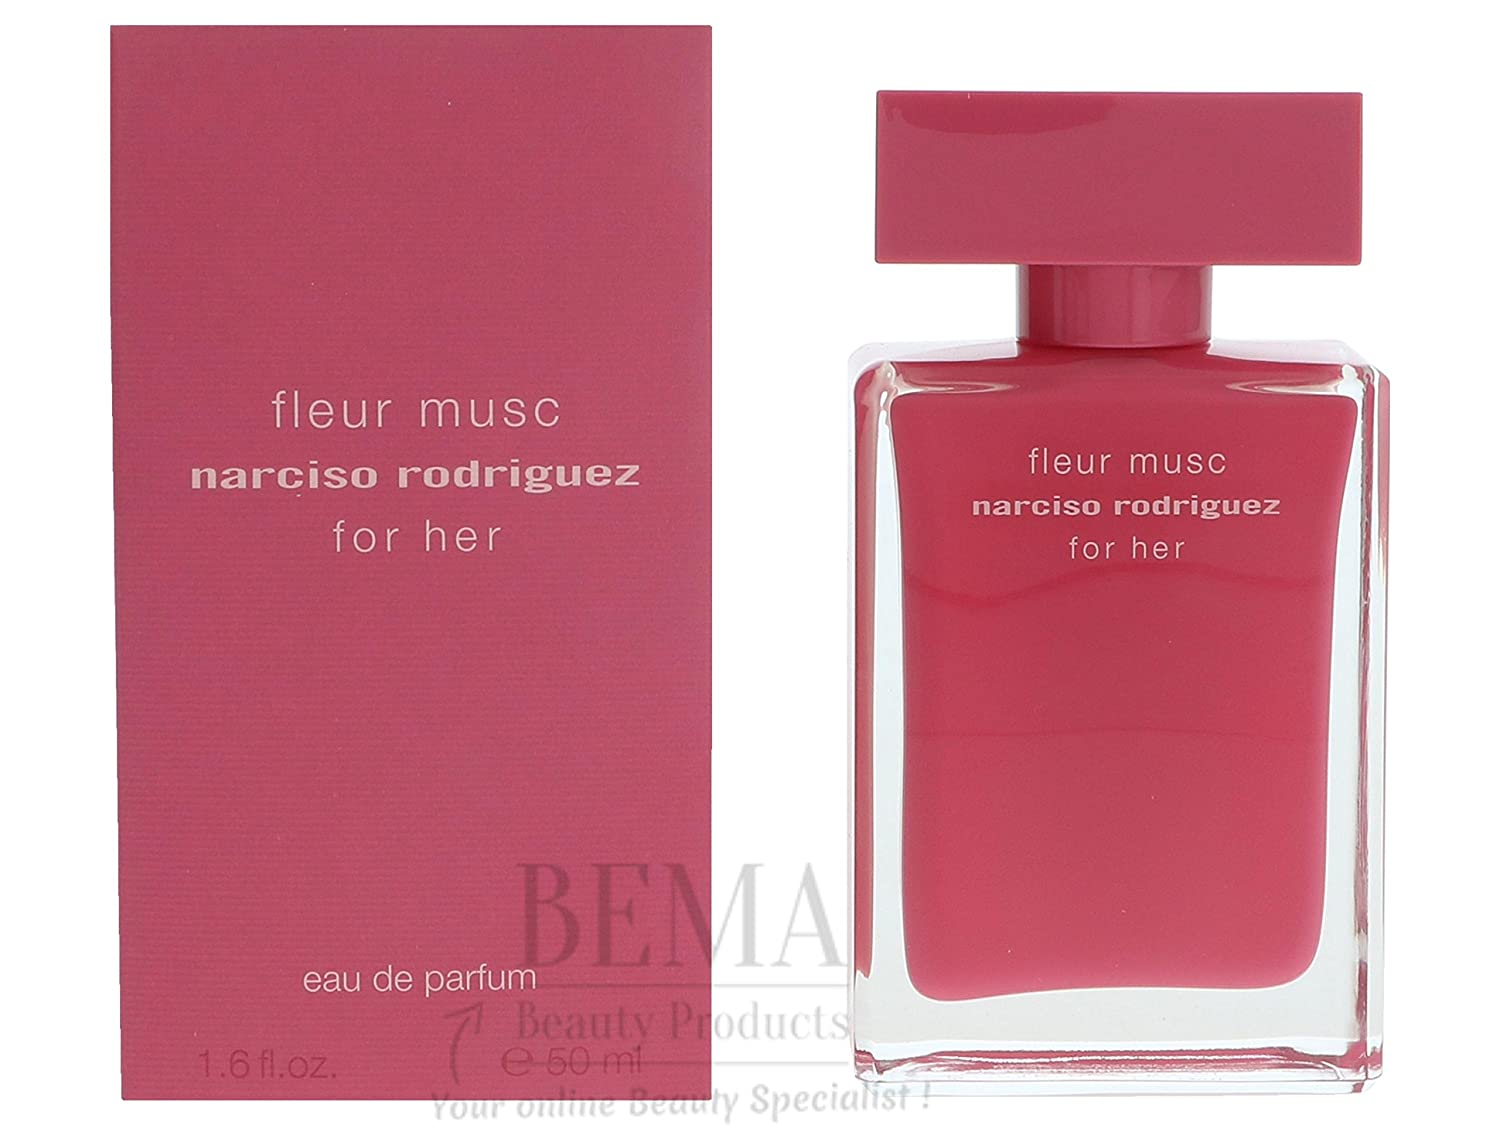 Narciso Rodriguez Fleur Musc For Her Eau De Profumo Spray - 100 ml R-S3-303-B1